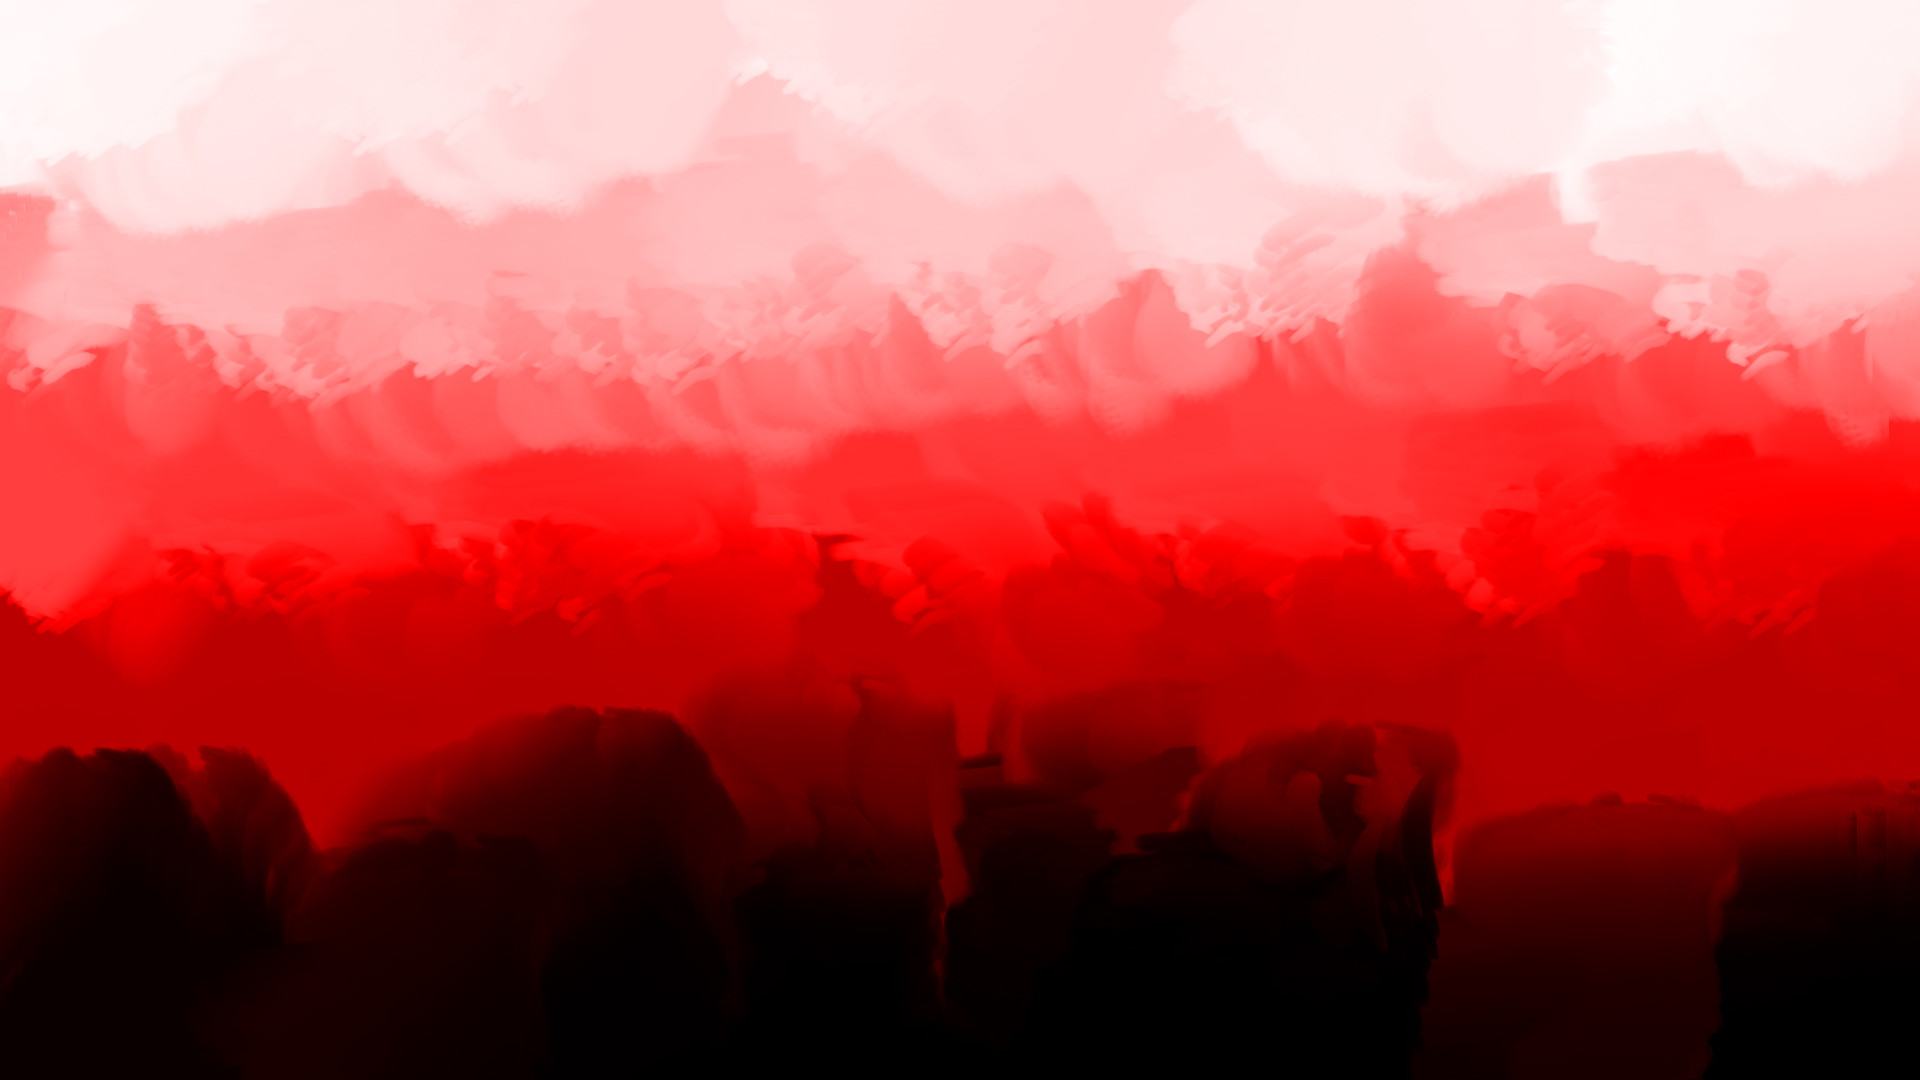 … Red, Black, and White abstract #1 by QUE-SAGE